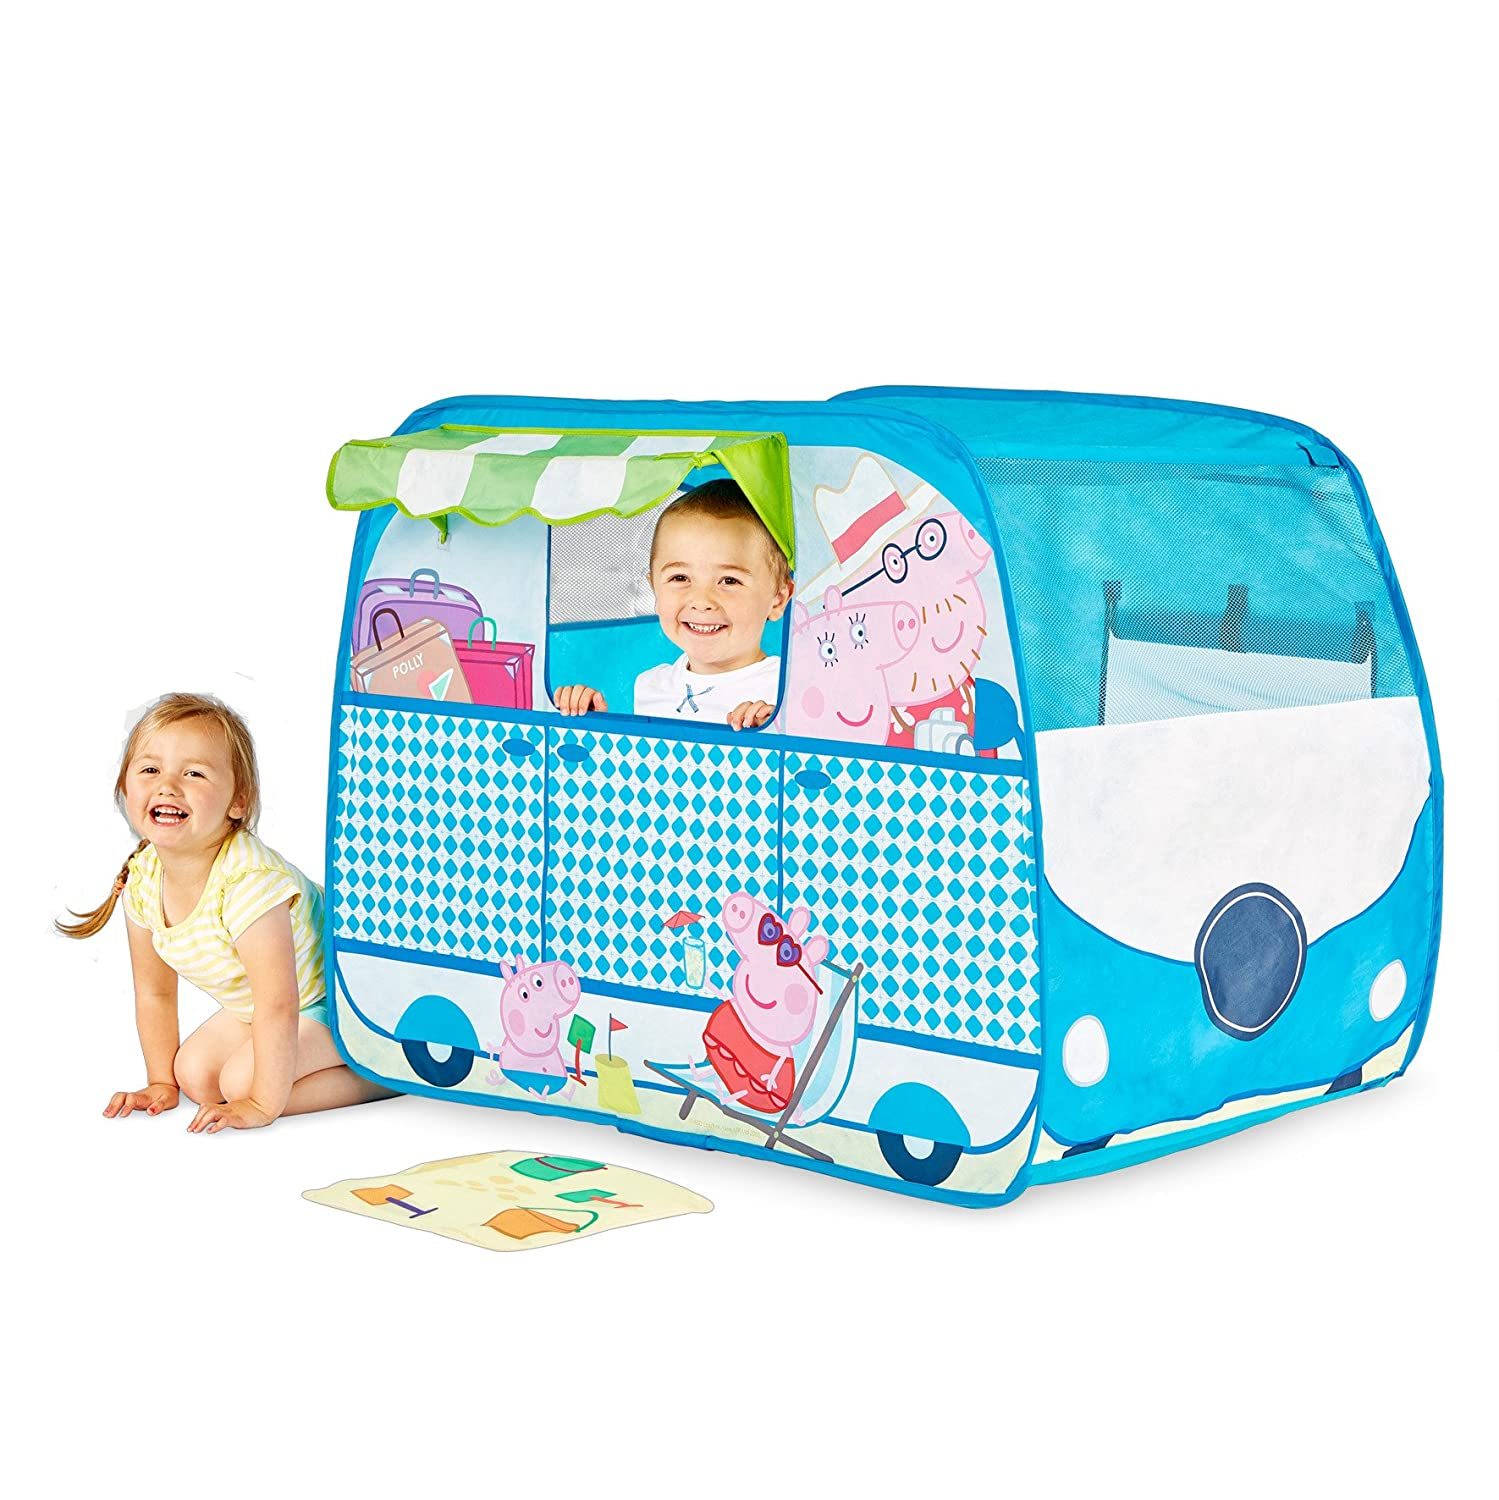 Peppa Pig 167PED C&ervan Playhouse Pop Up Role Play Tent Amazon.co.uk Toys u0026 Games  sc 1 st  Amazon UK & Peppa Pig 167PED Campervan Playhouse Pop Up Role Play Tent ...